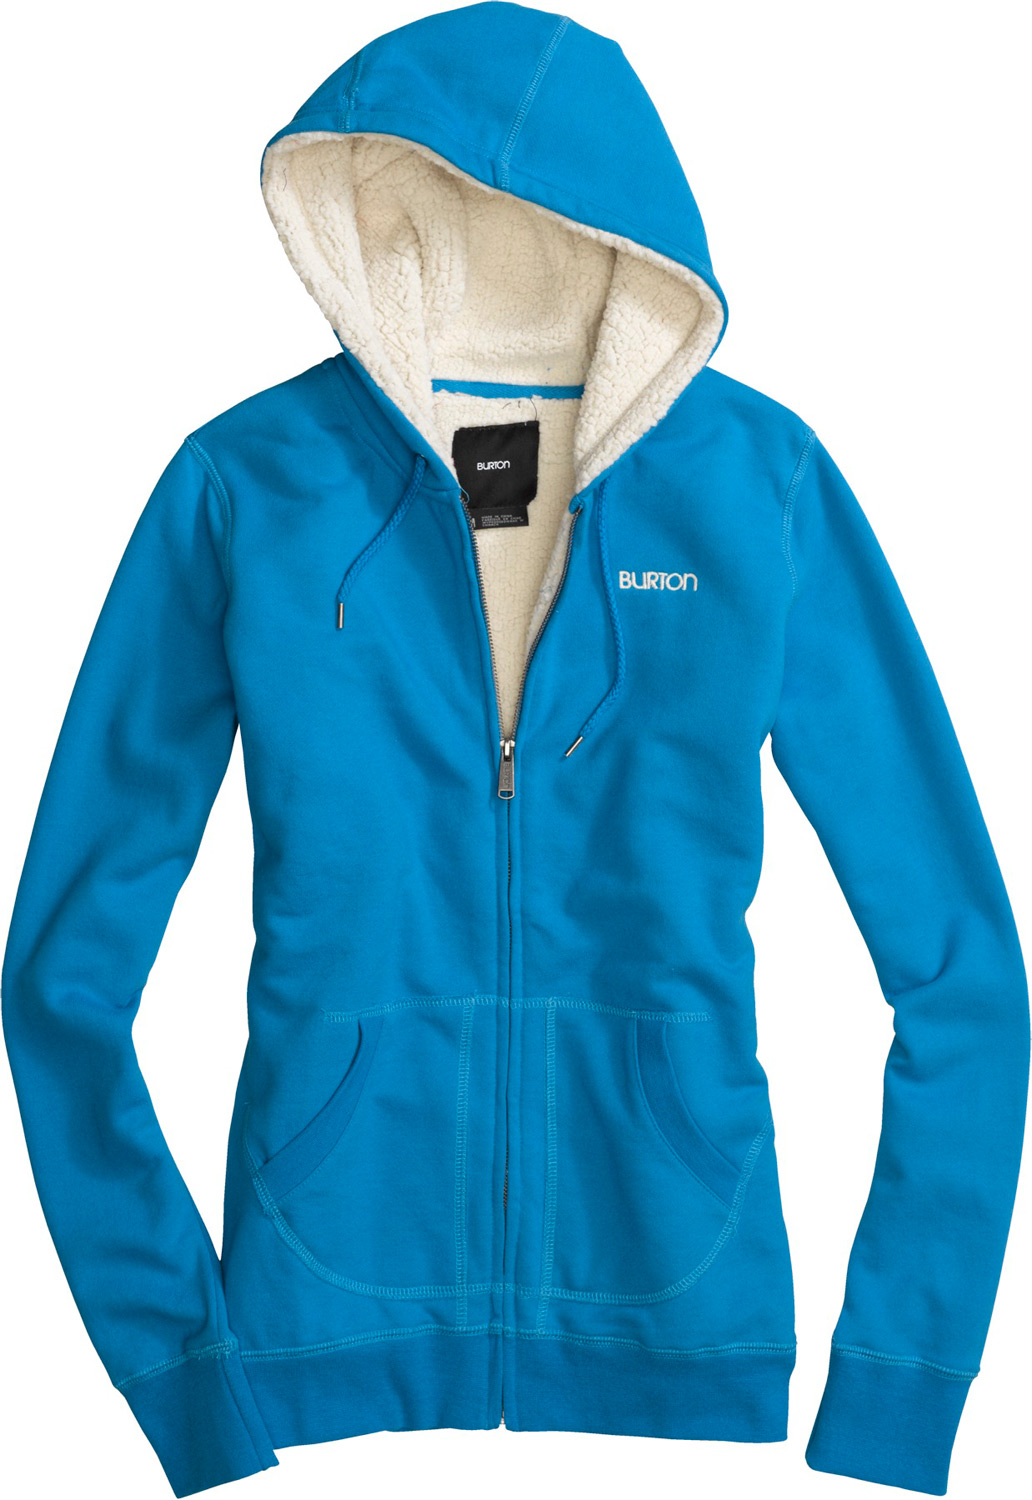 Snowboard Key Features of the Burton Monarch Custom Fullzip Hoodie: 60% Cotton, 40% Polyester, 300G Fleece Carbon Brushed Full-Zip Fleece with Sherpa Lining Embroidered Logo Regular Fit - $65.00